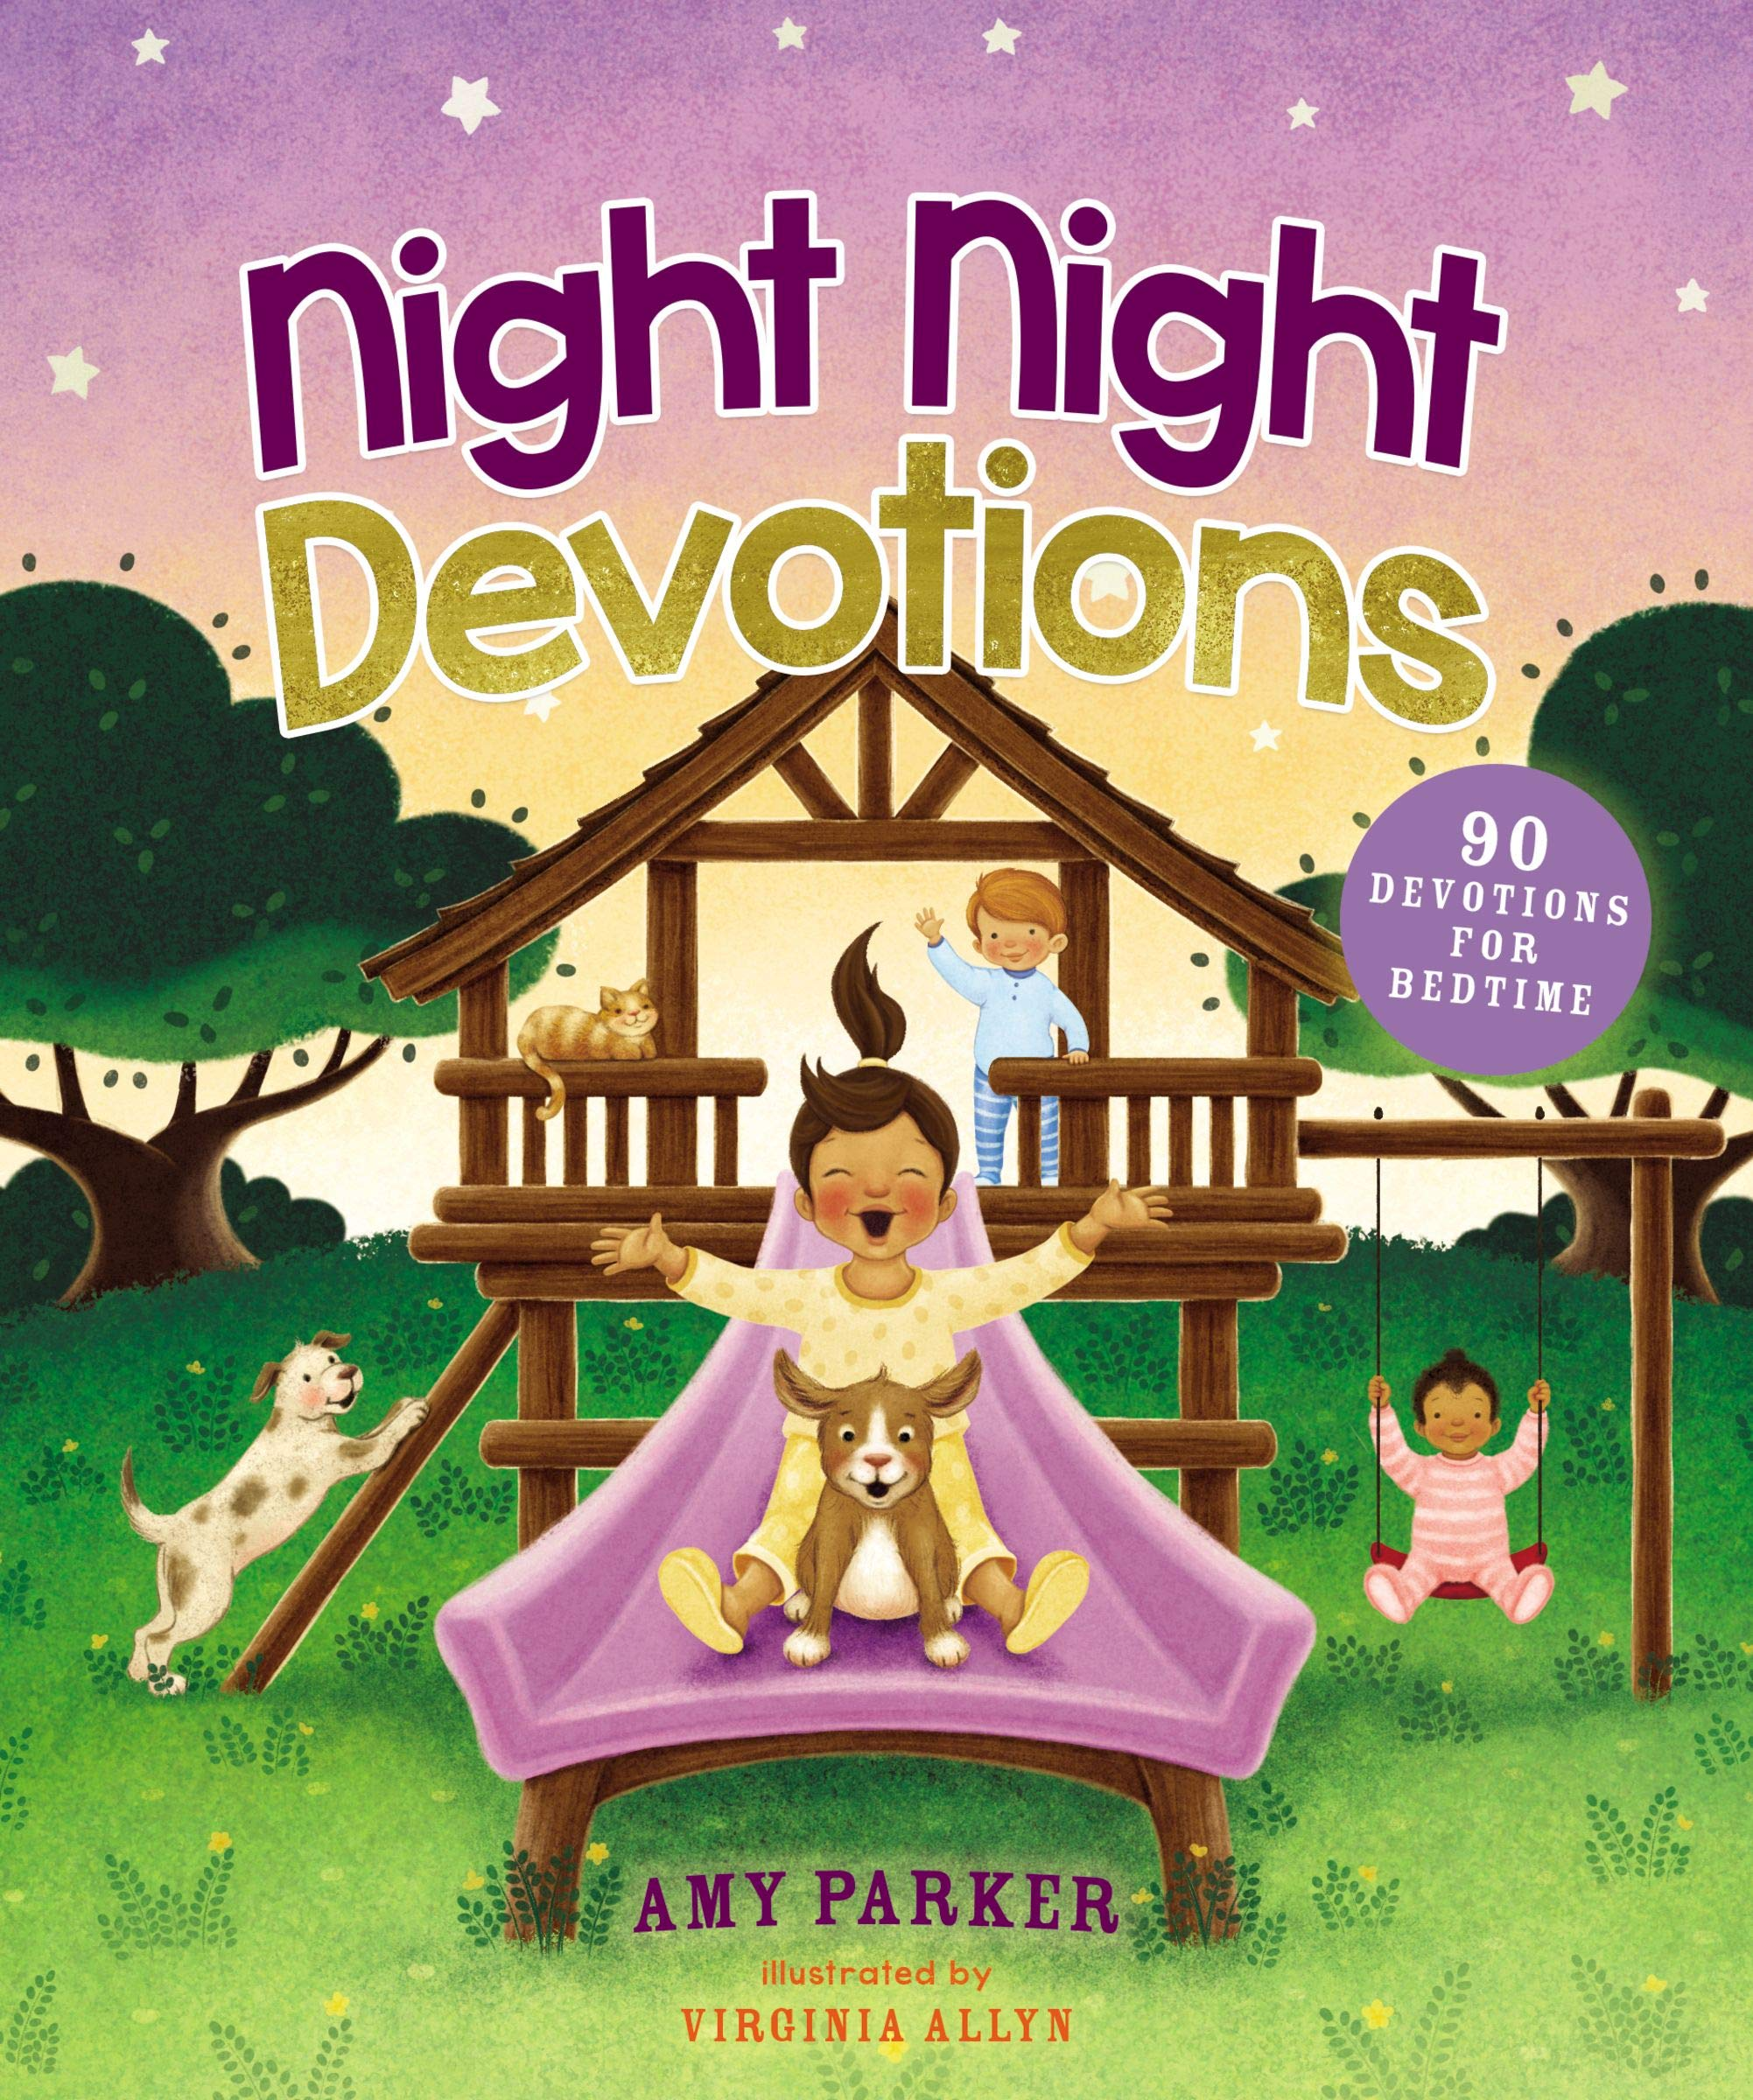 ROCKONLINE | New Creation Church | NCC | Joseph Prince | ROCK Bookshop | ROCK Bookstore | Star Vista | Children | Bedtime Story | Bible Stories | Christian Living  | Night Night Devotions: 90 Devotions for Bedtime | Free delivery for Singapore orders above $50.